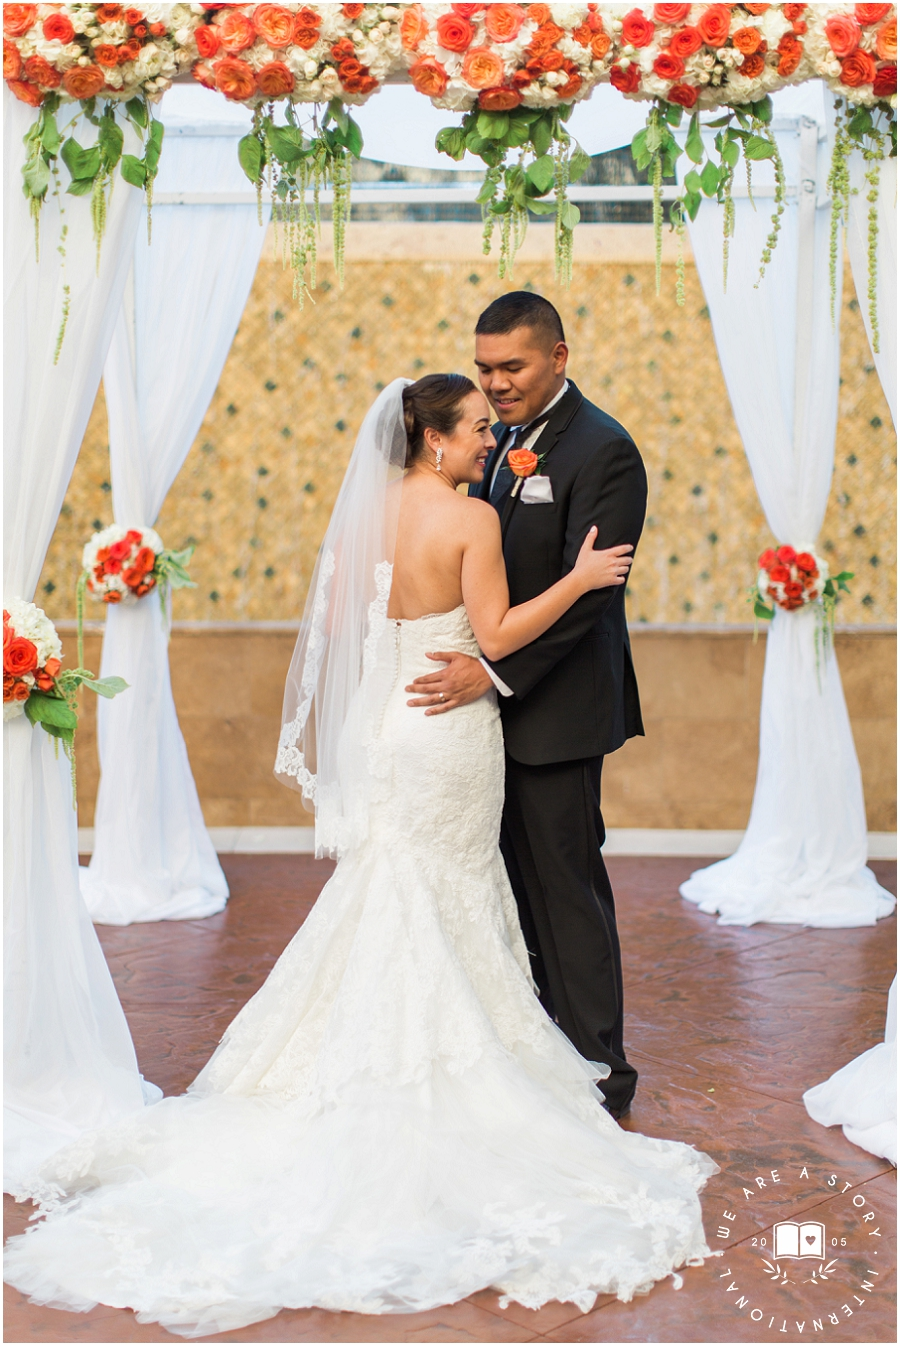 Four Seasons wedding photographer Las Vegas _ We Are A Story wedding photographer_2497.jpg